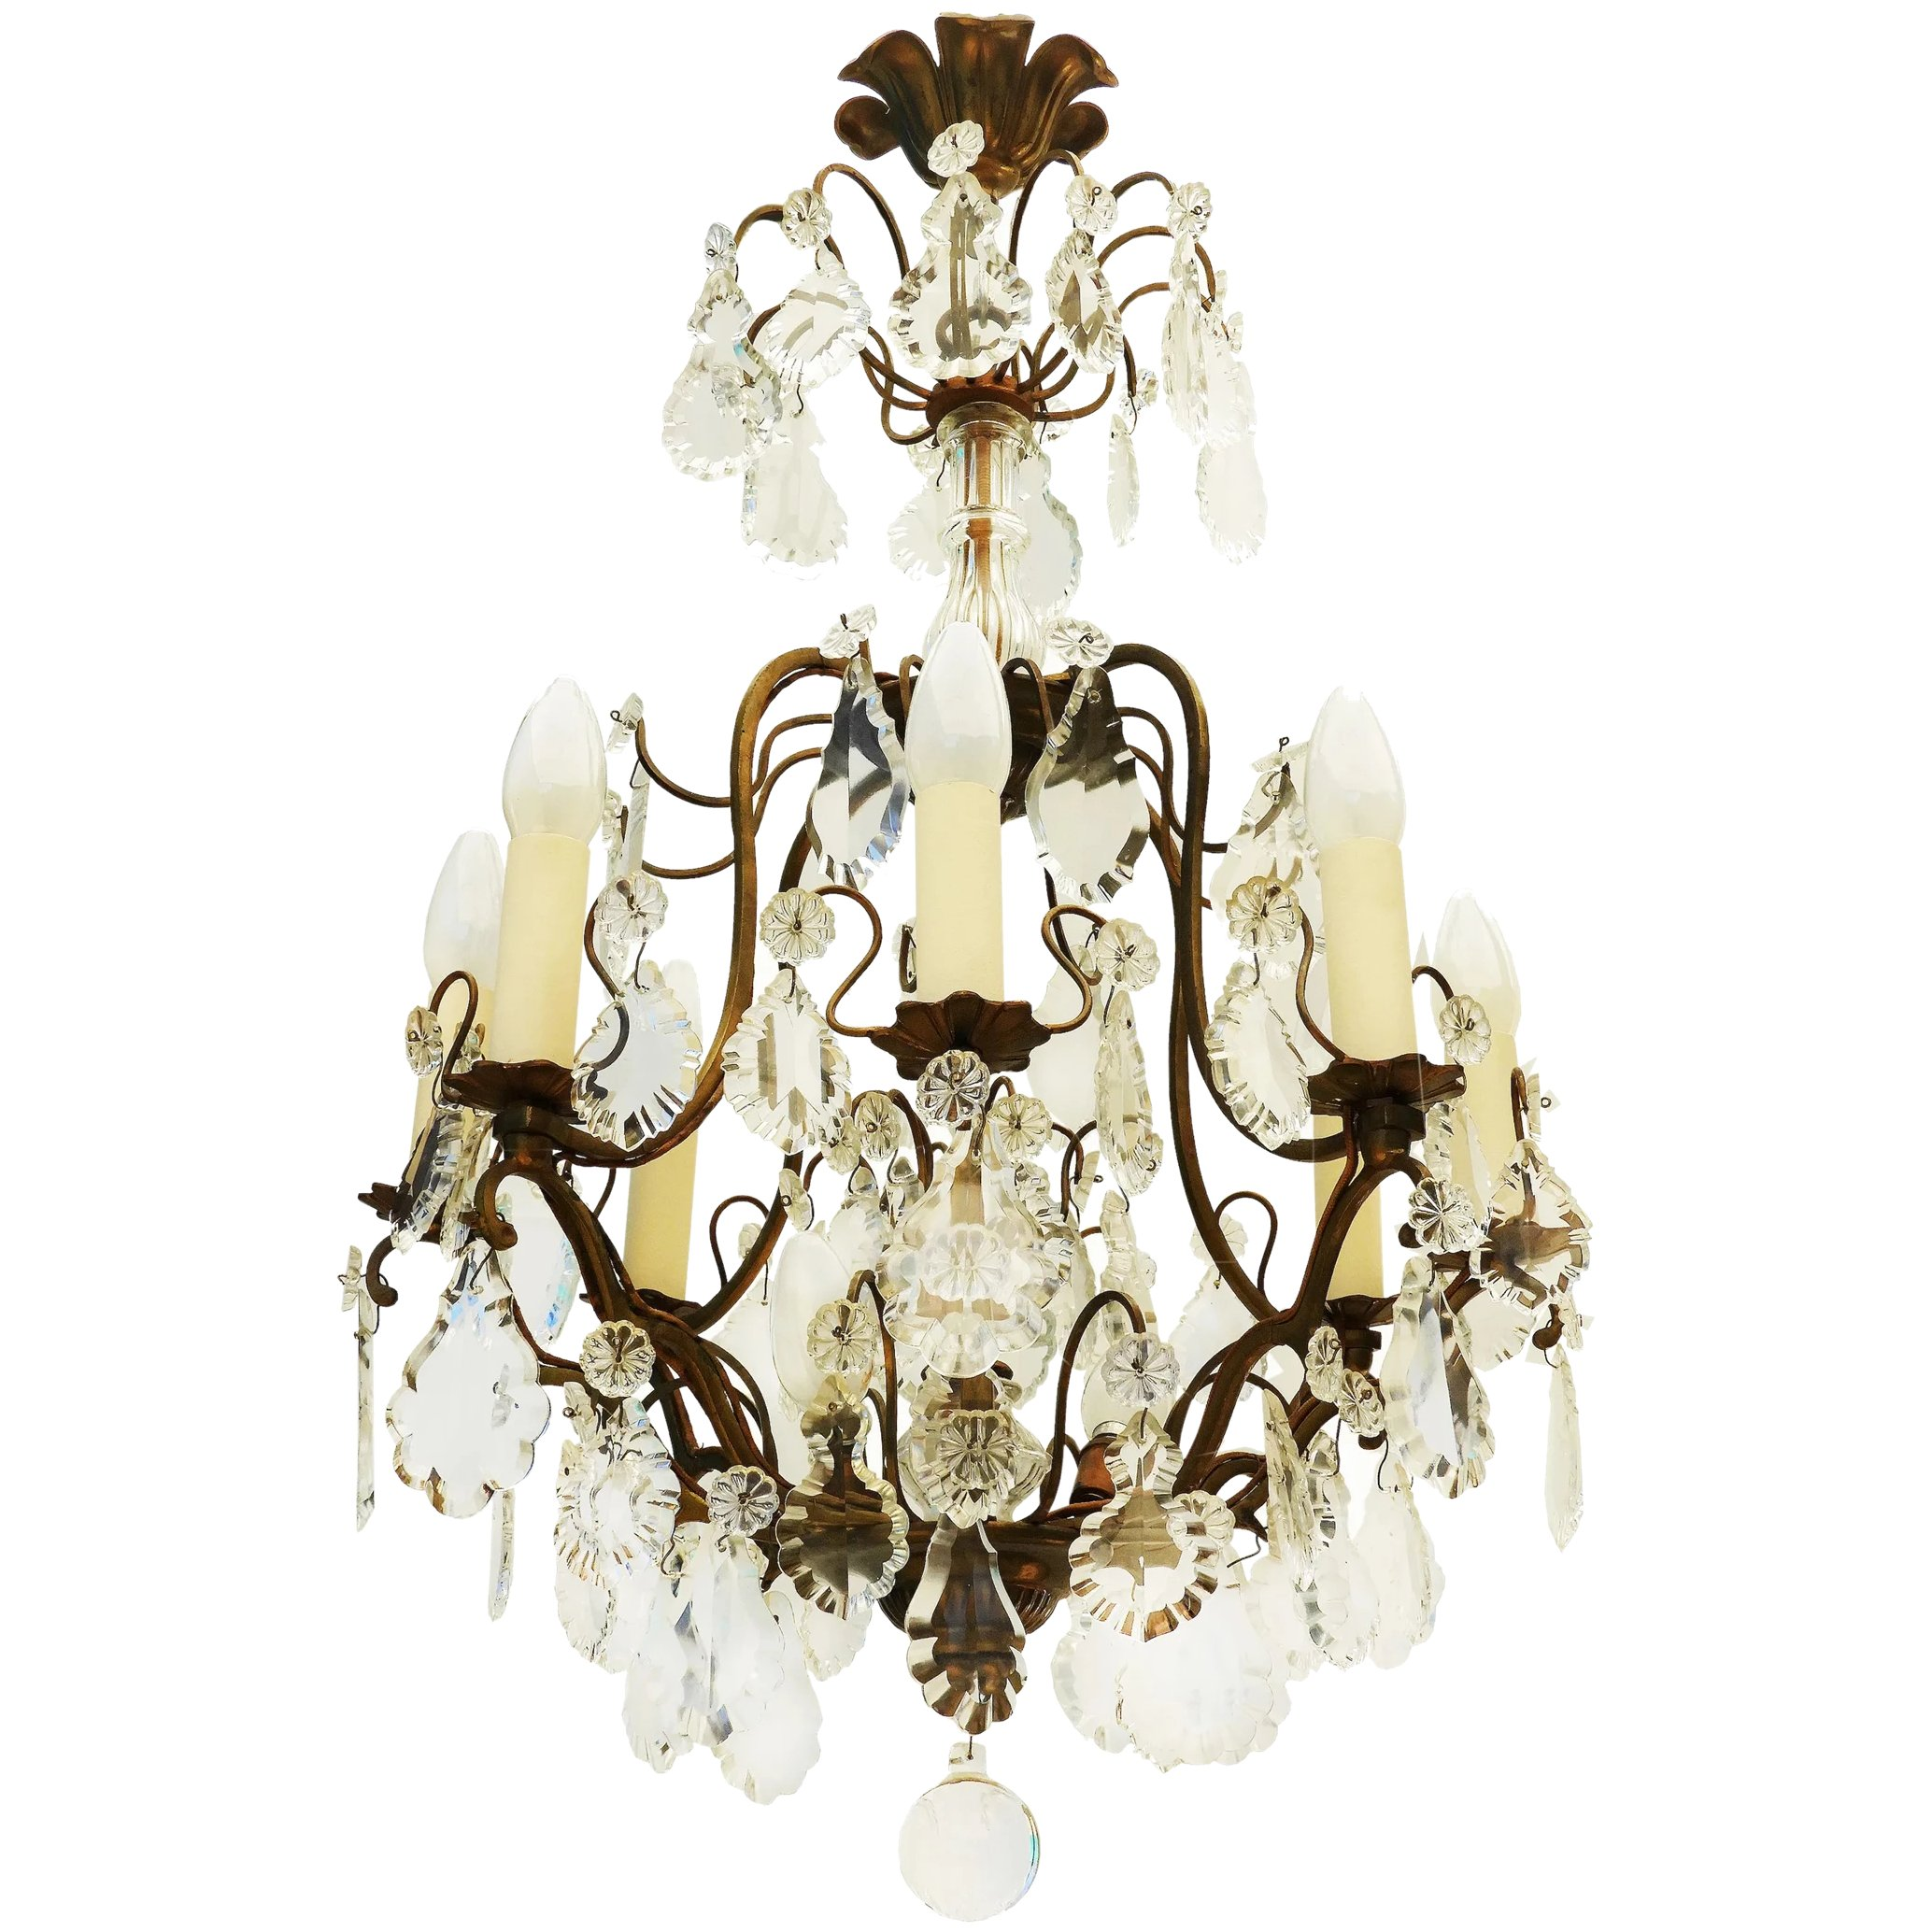 Typical from Paris Apartment French Cage Chandelier  3 bulbs L2 solid bronze and crystal prisms